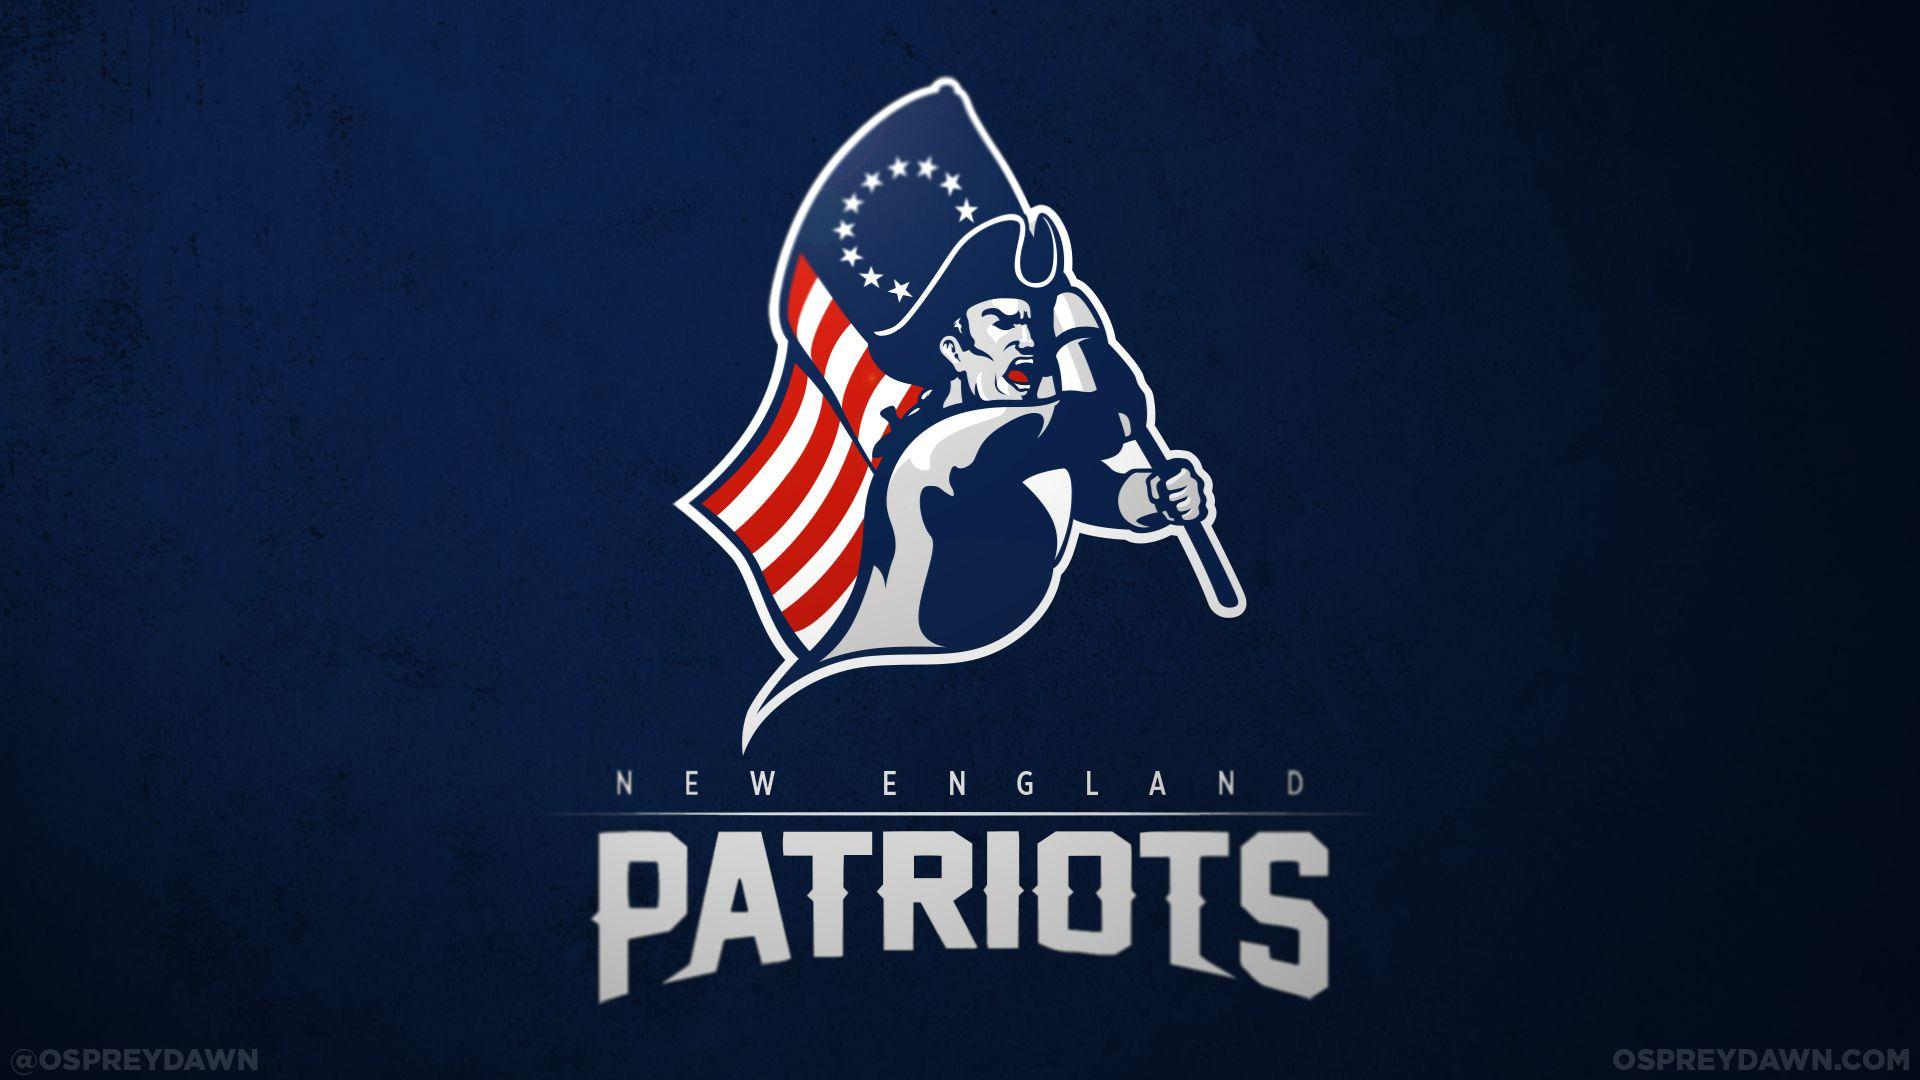 New England Patriots Wallpapers Group